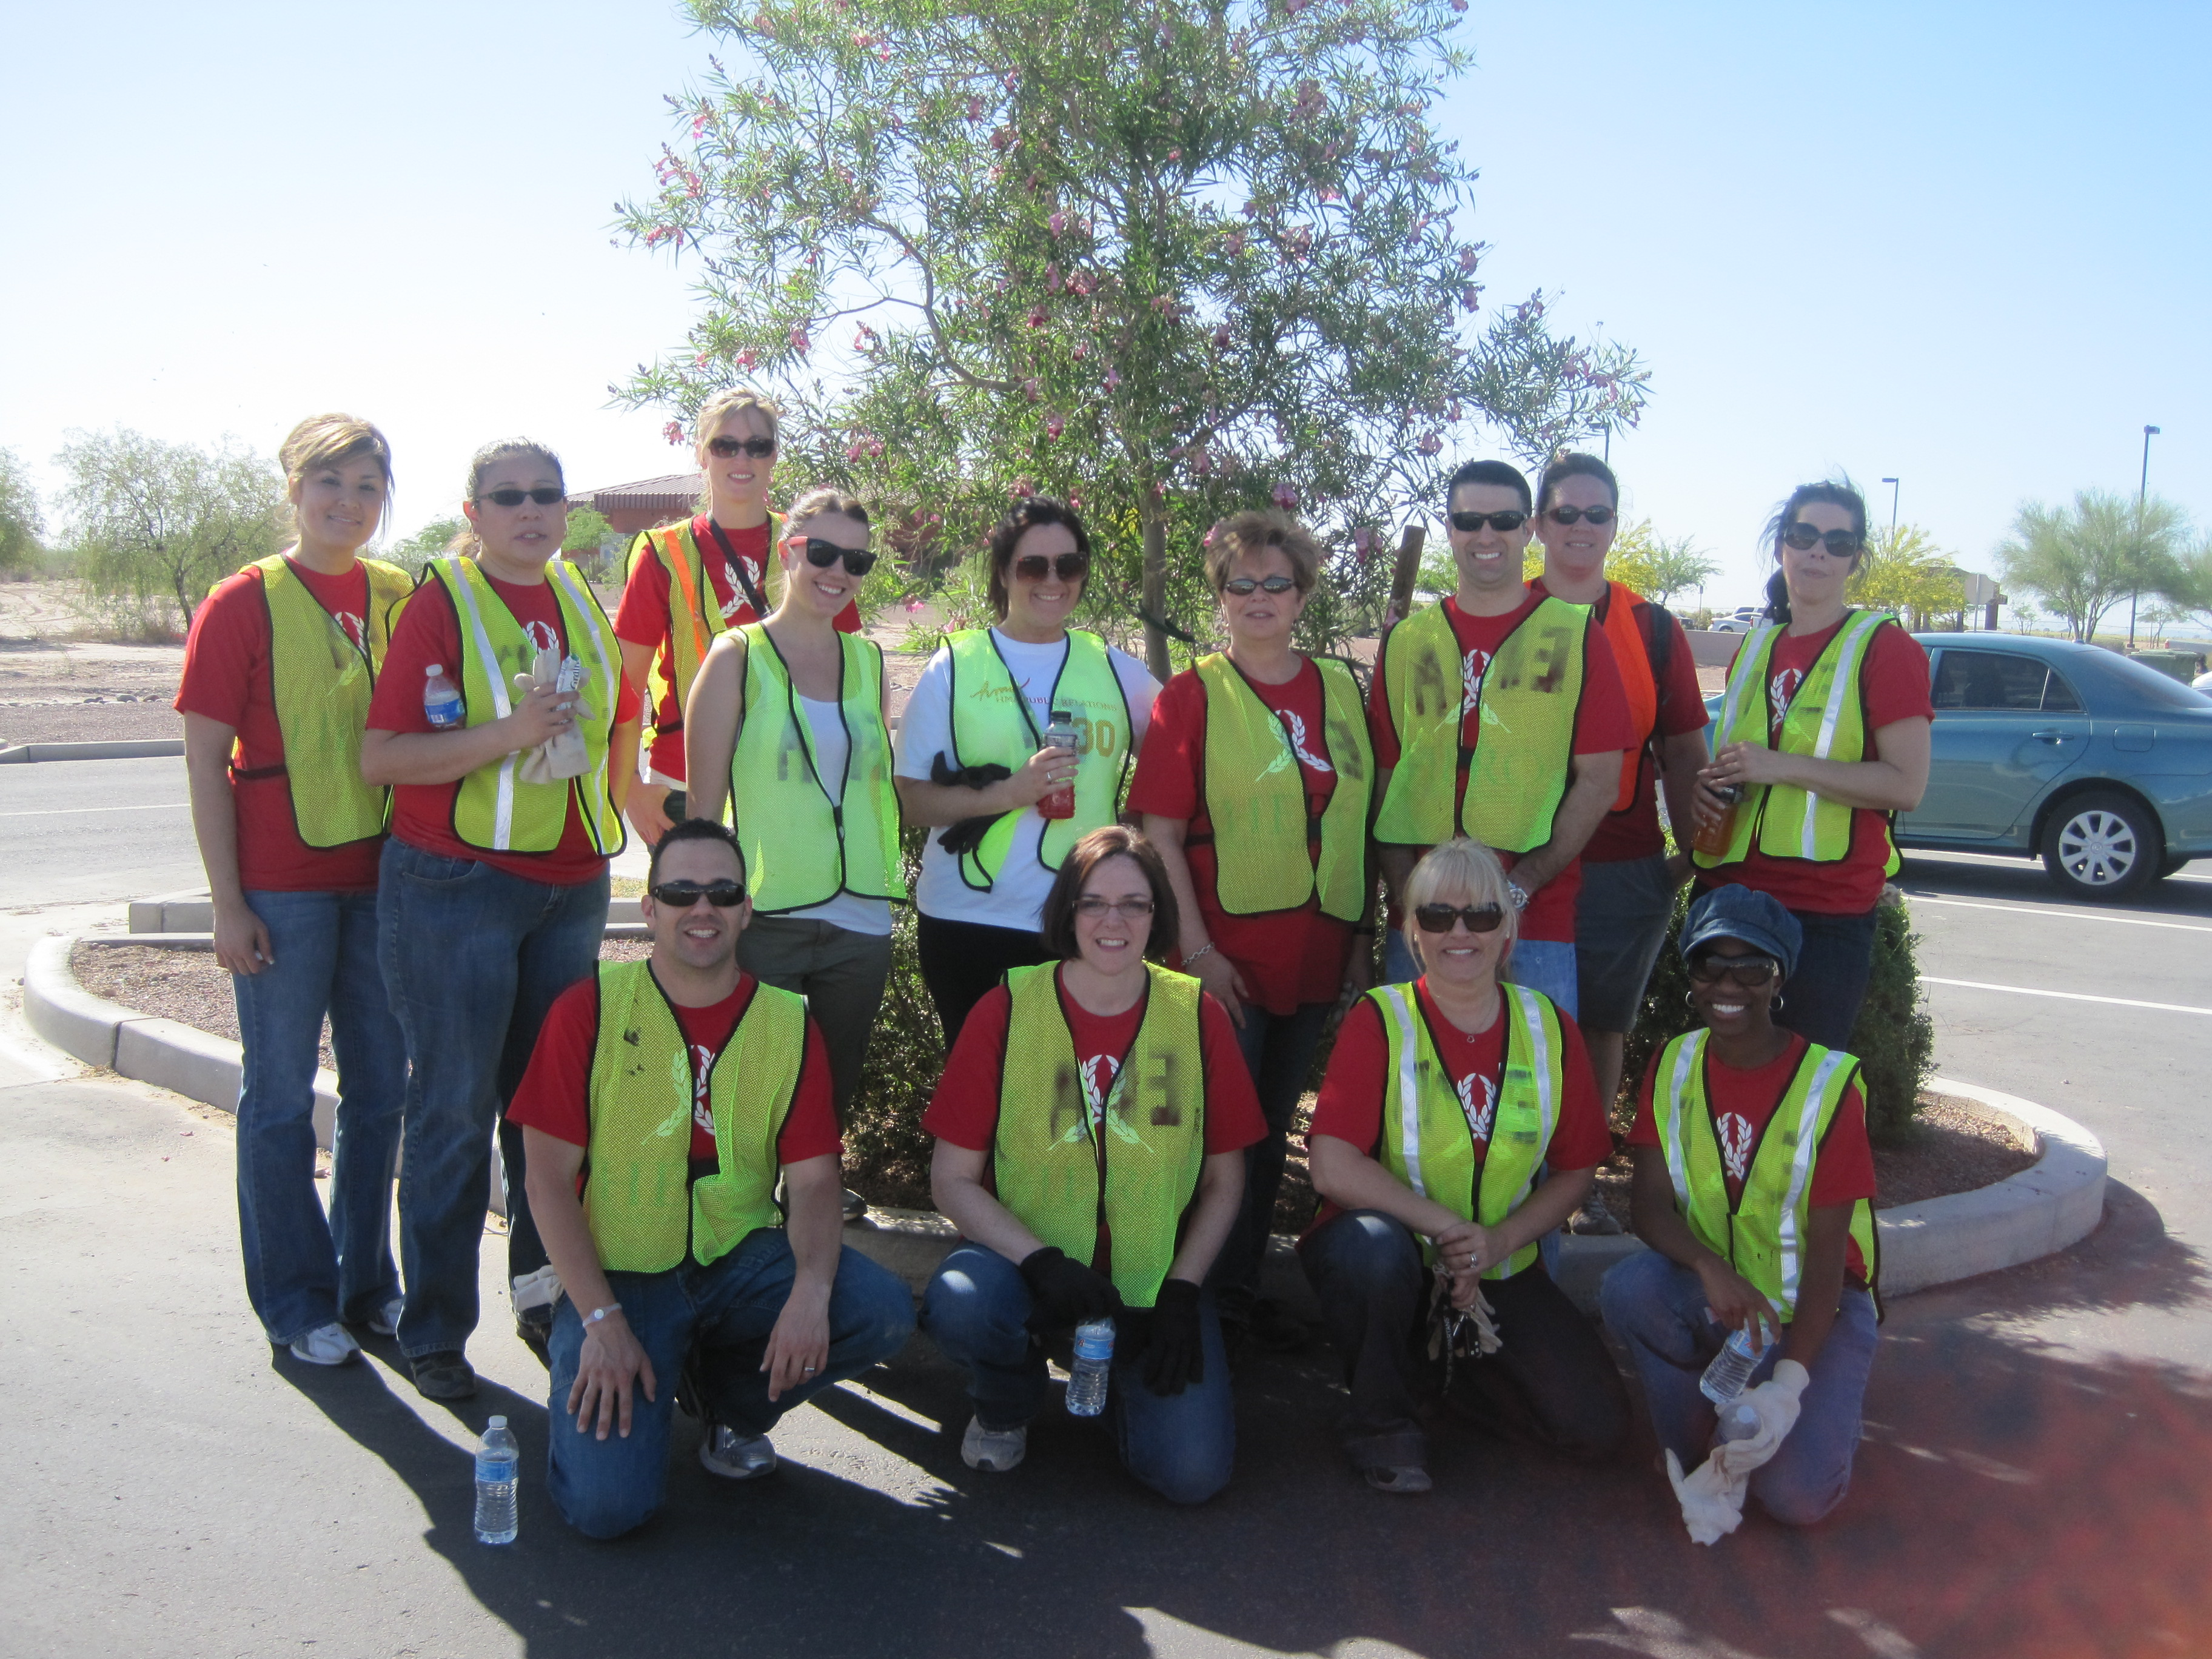 Harrah's Ak-Chin employees giving back by cleaning up the community on Earth Day.